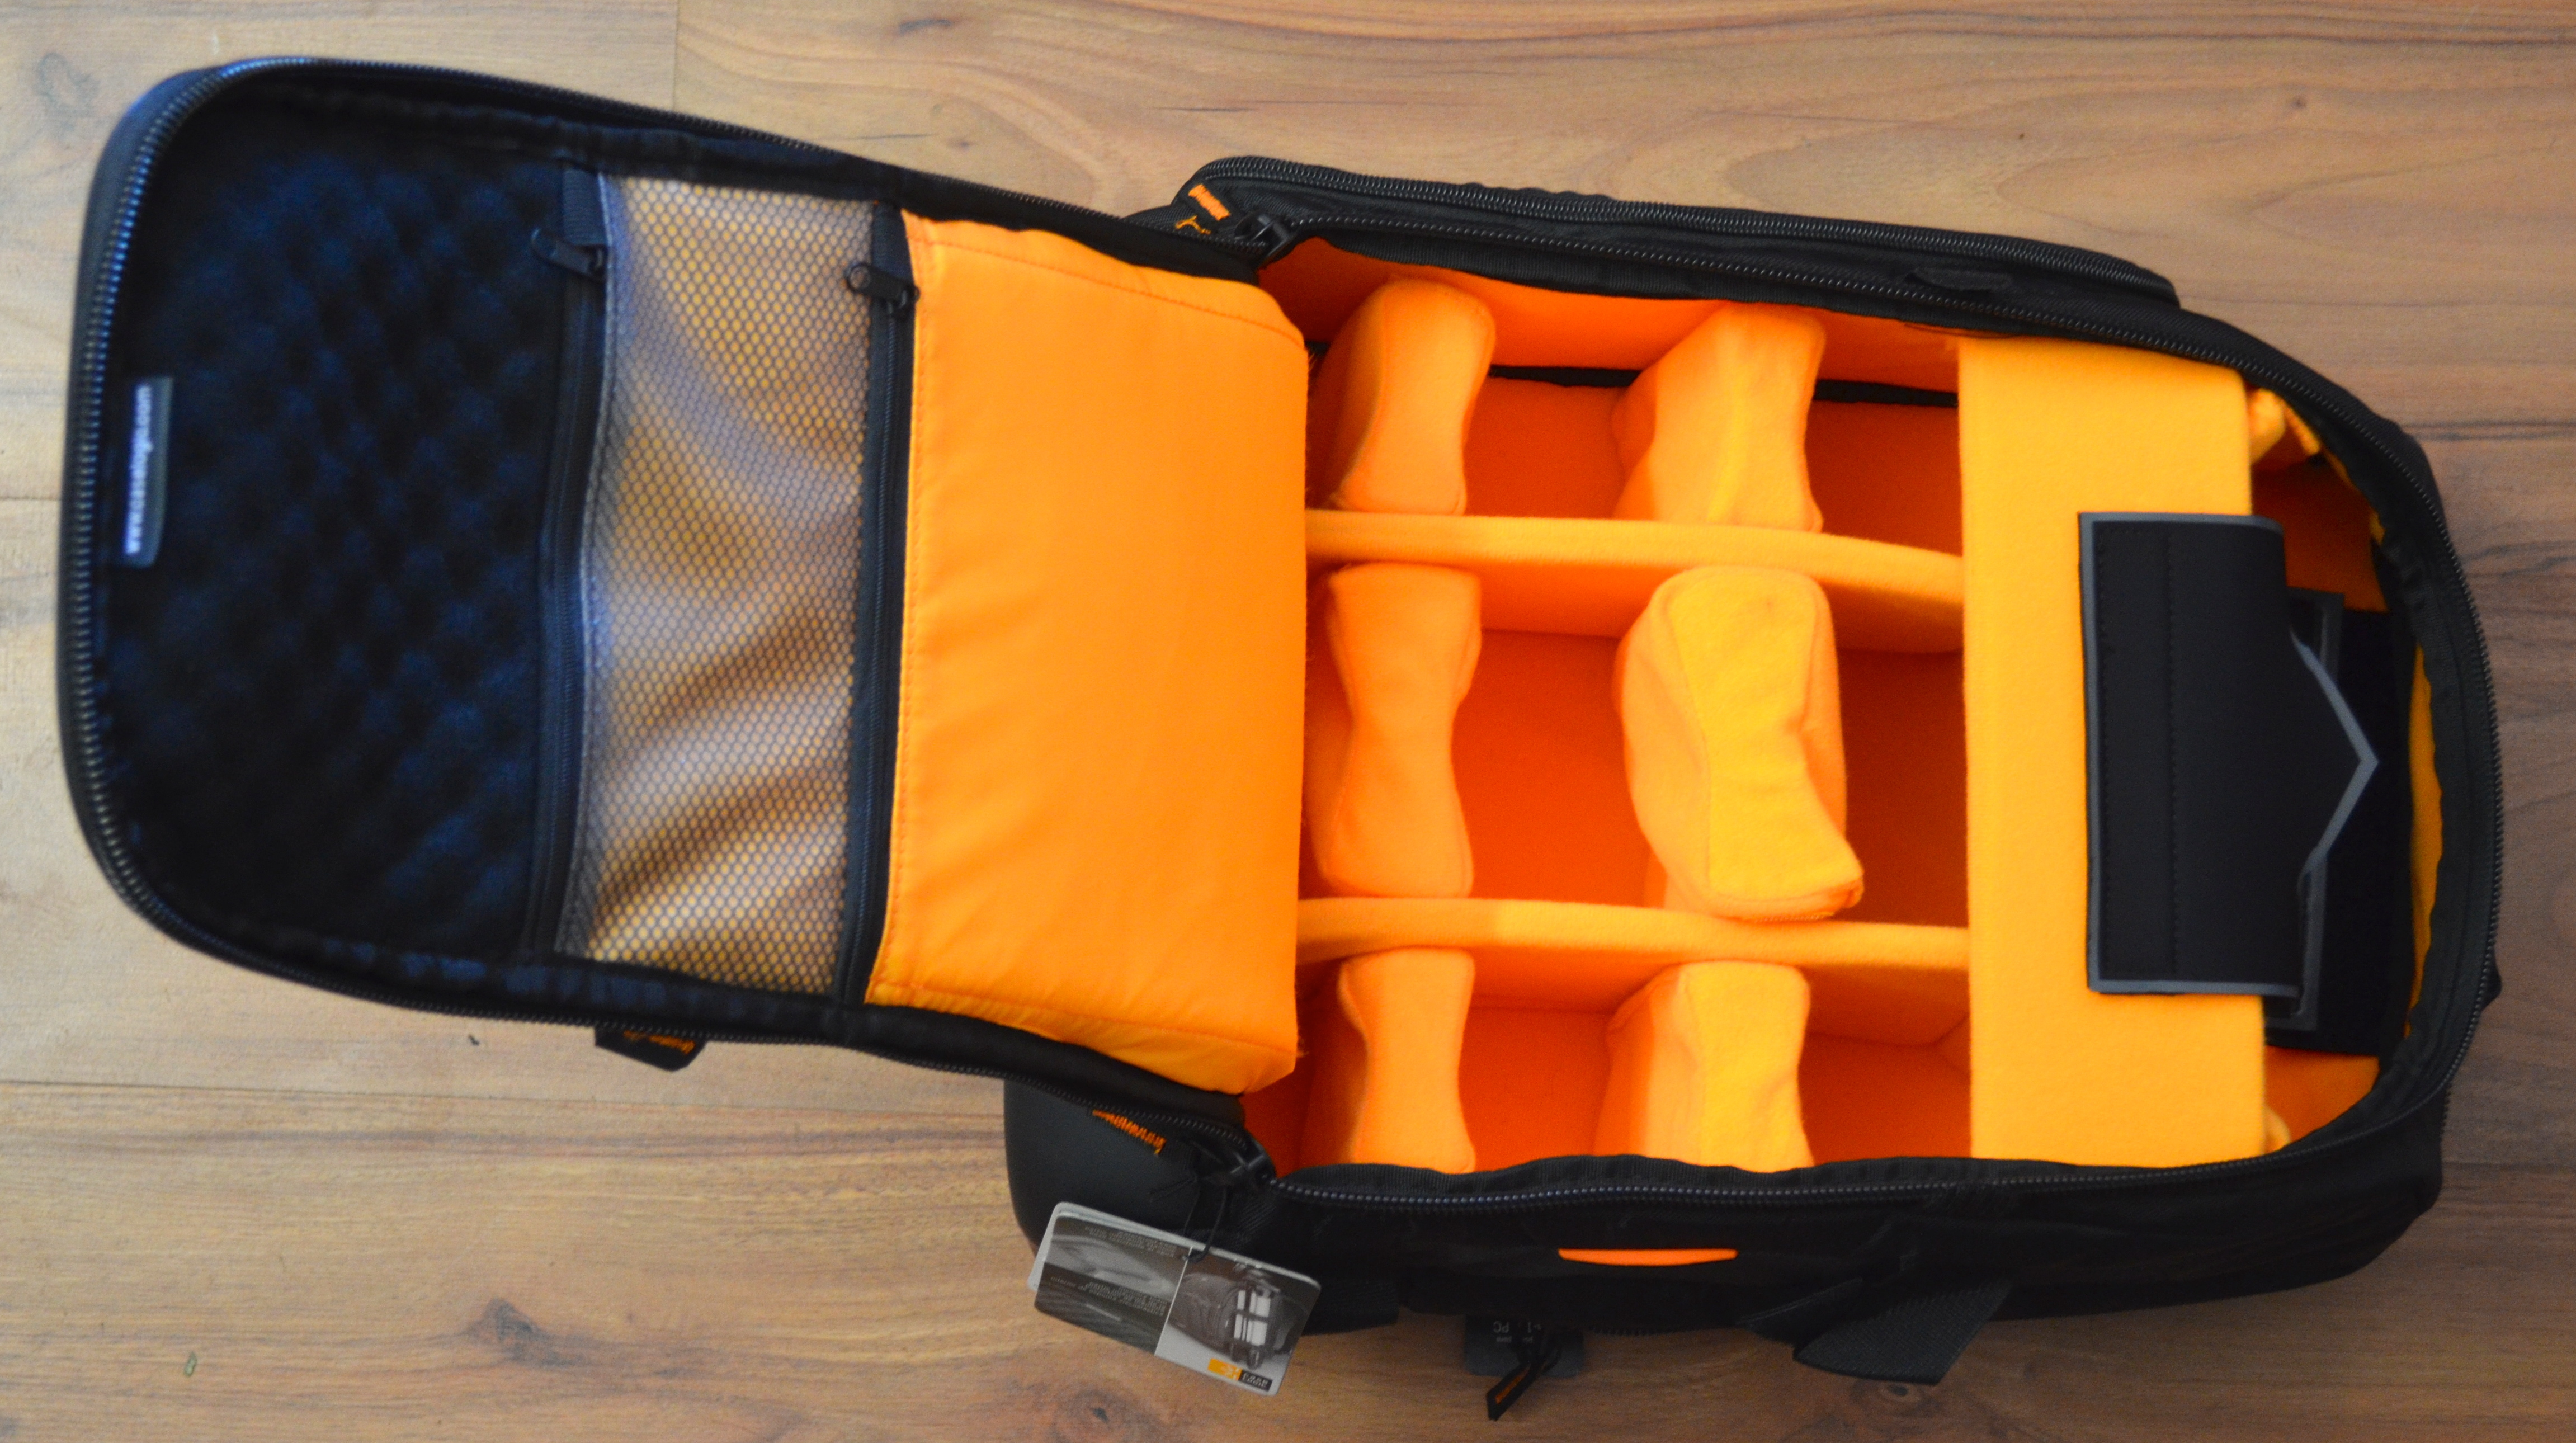 Case Logic SLRC 206 CameraLaptop Bag Review